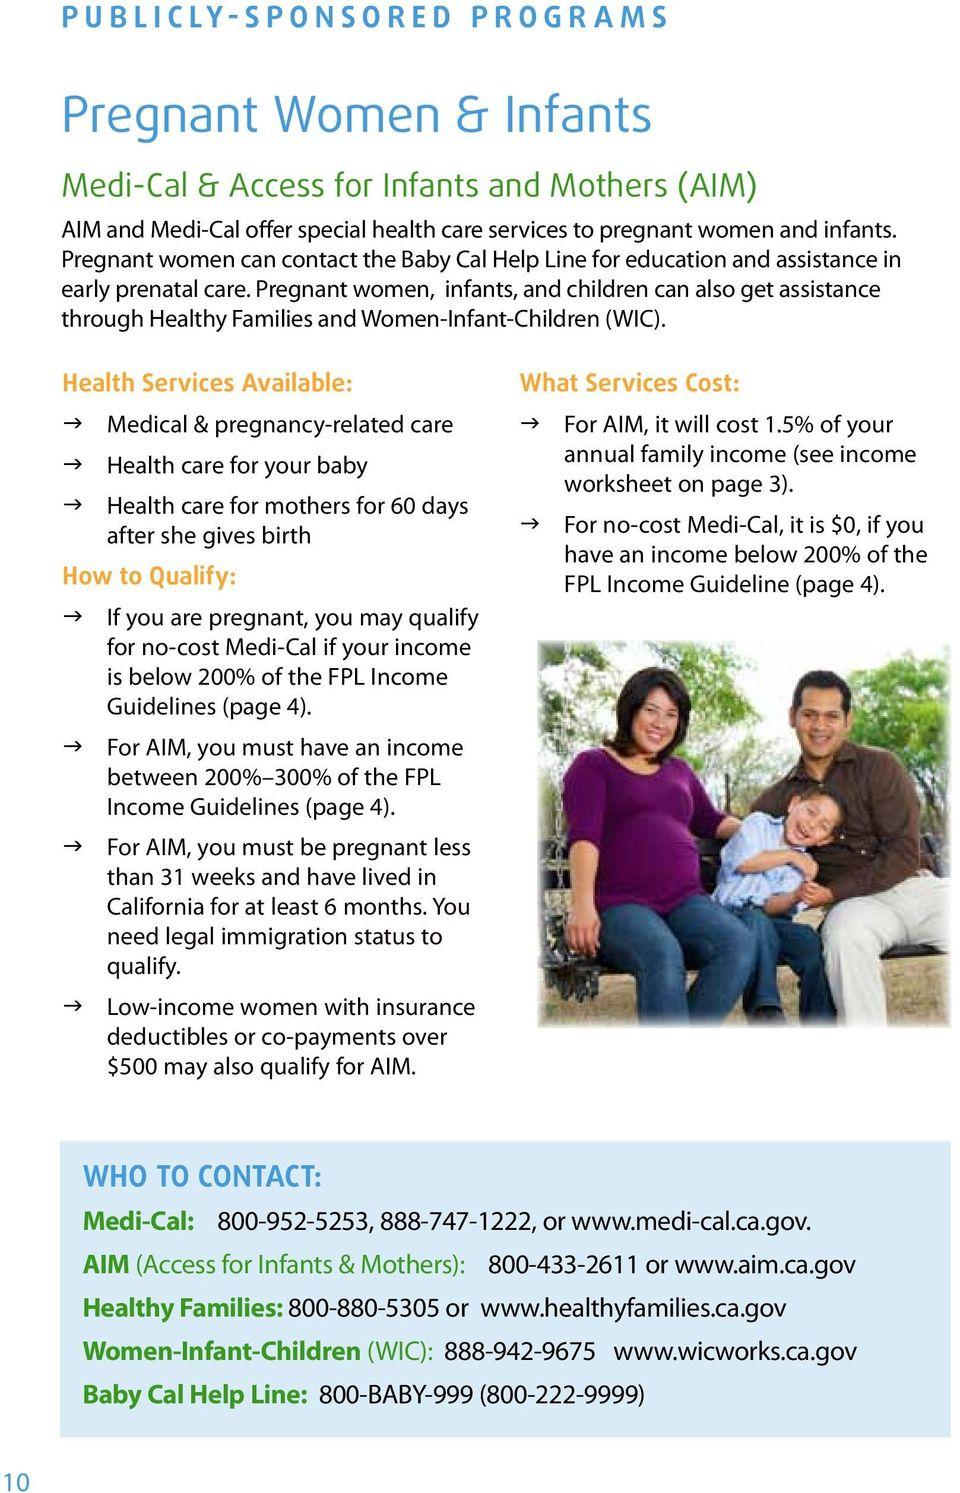 Pregnant women, infants, and children can also get assistance through Healthy Families and Women-Infant-Children (WIC).